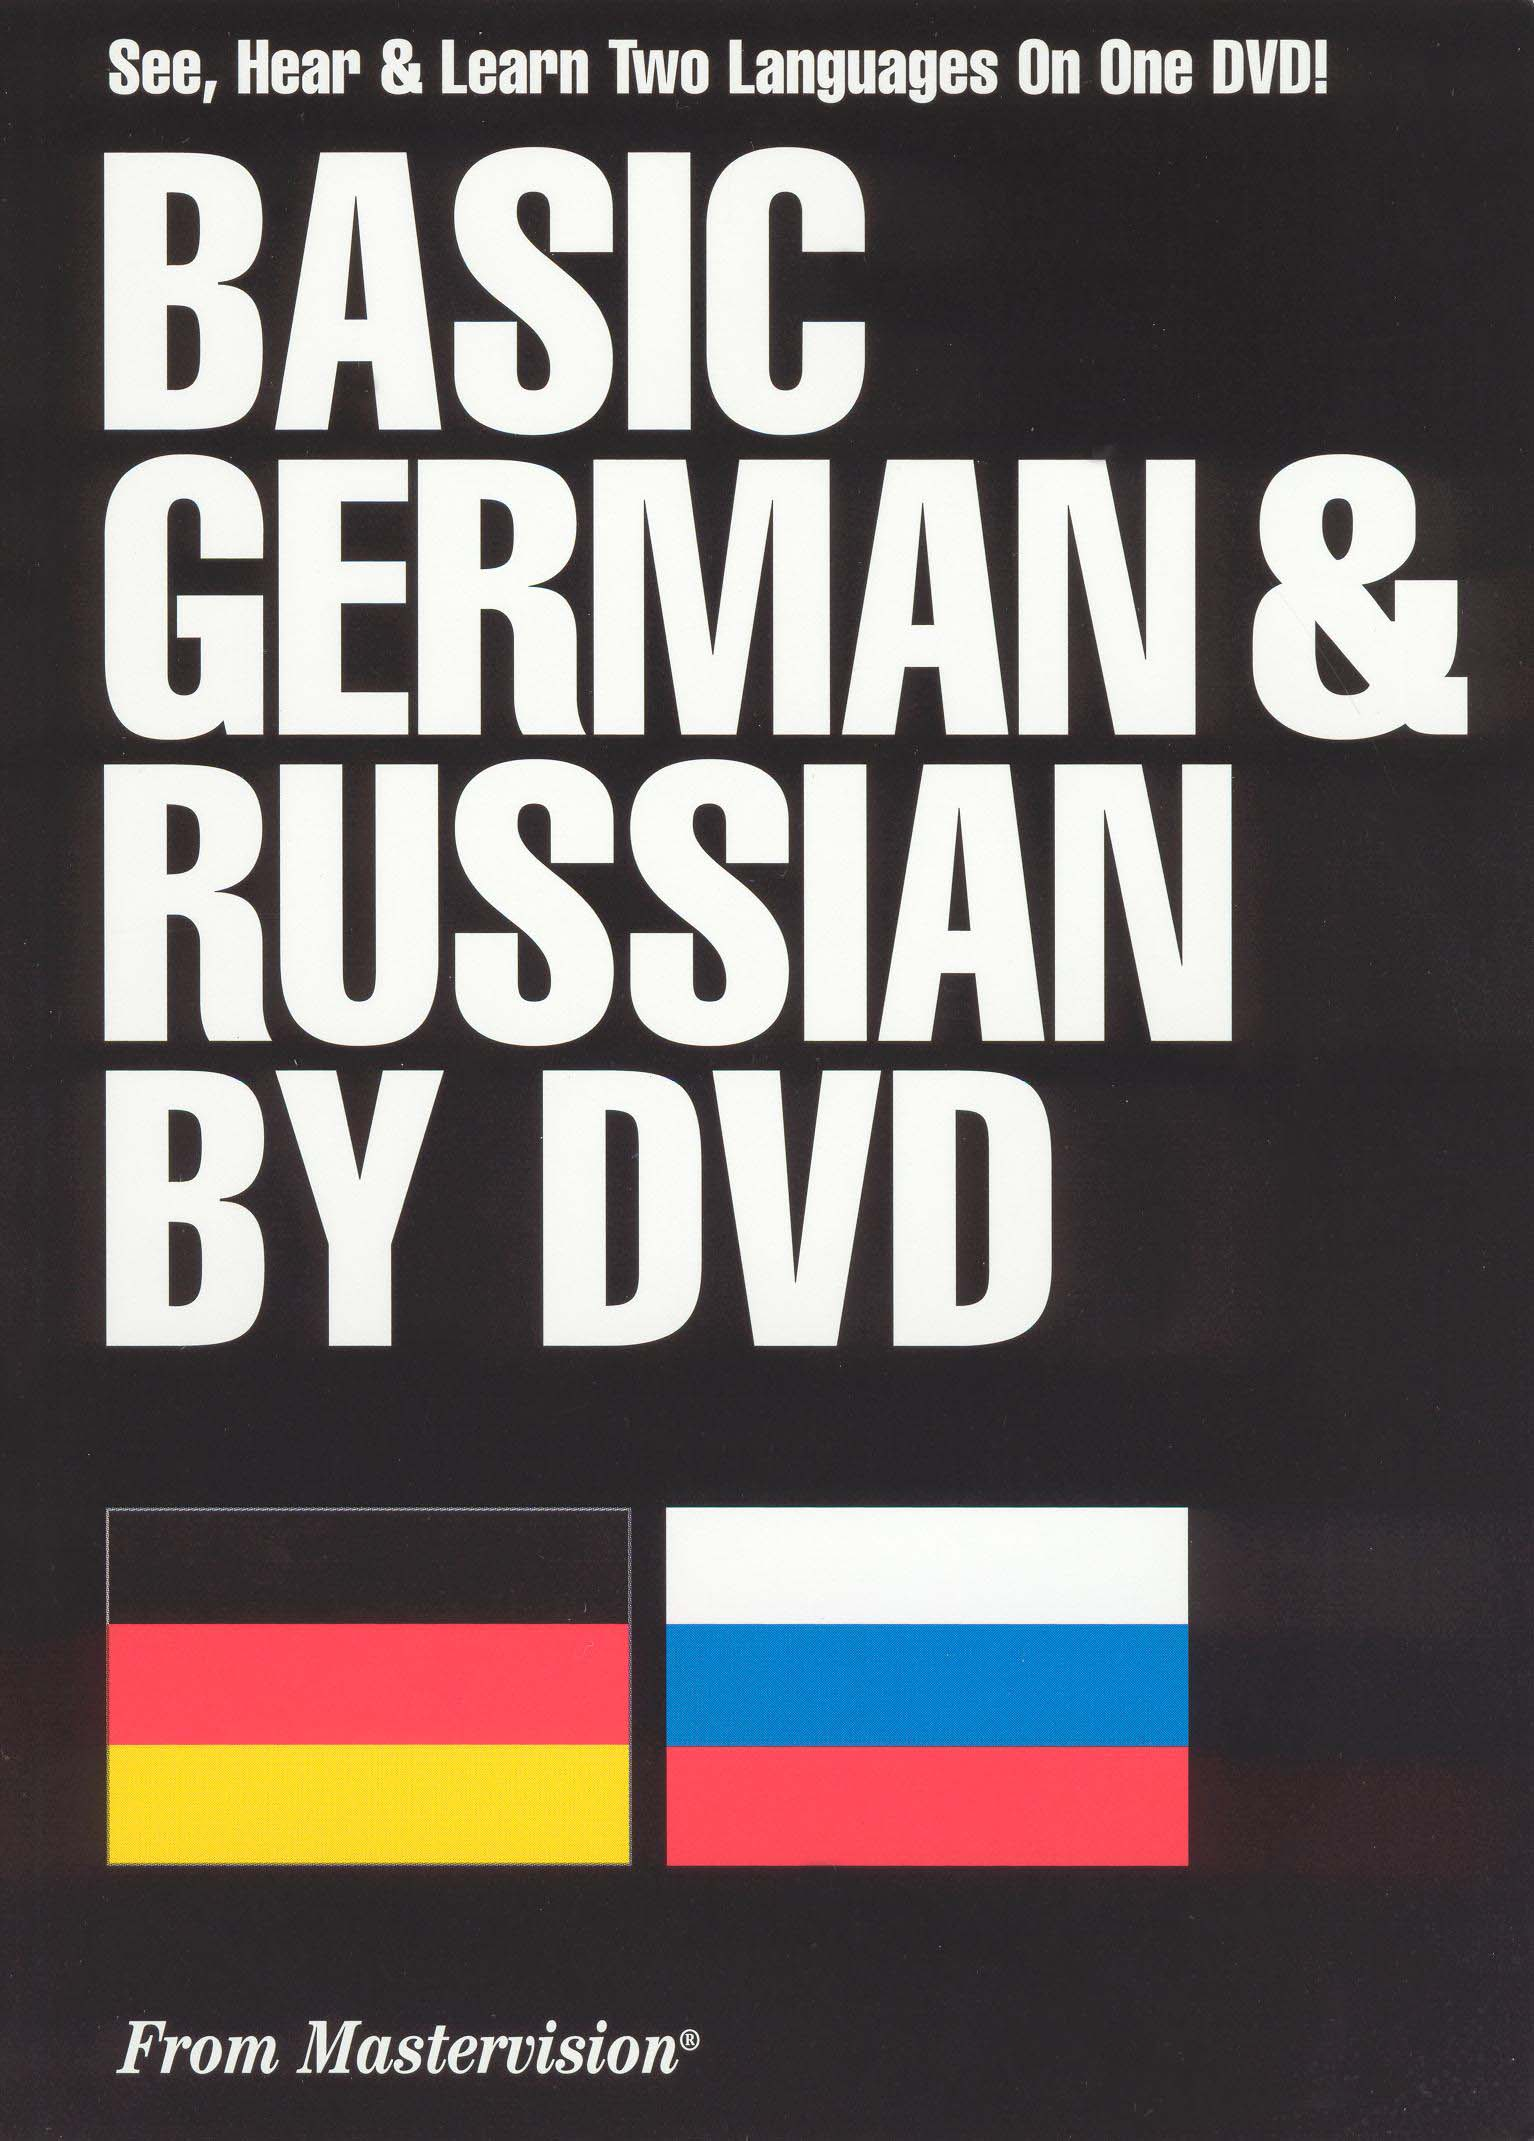 Basic German and Russian on Dvd